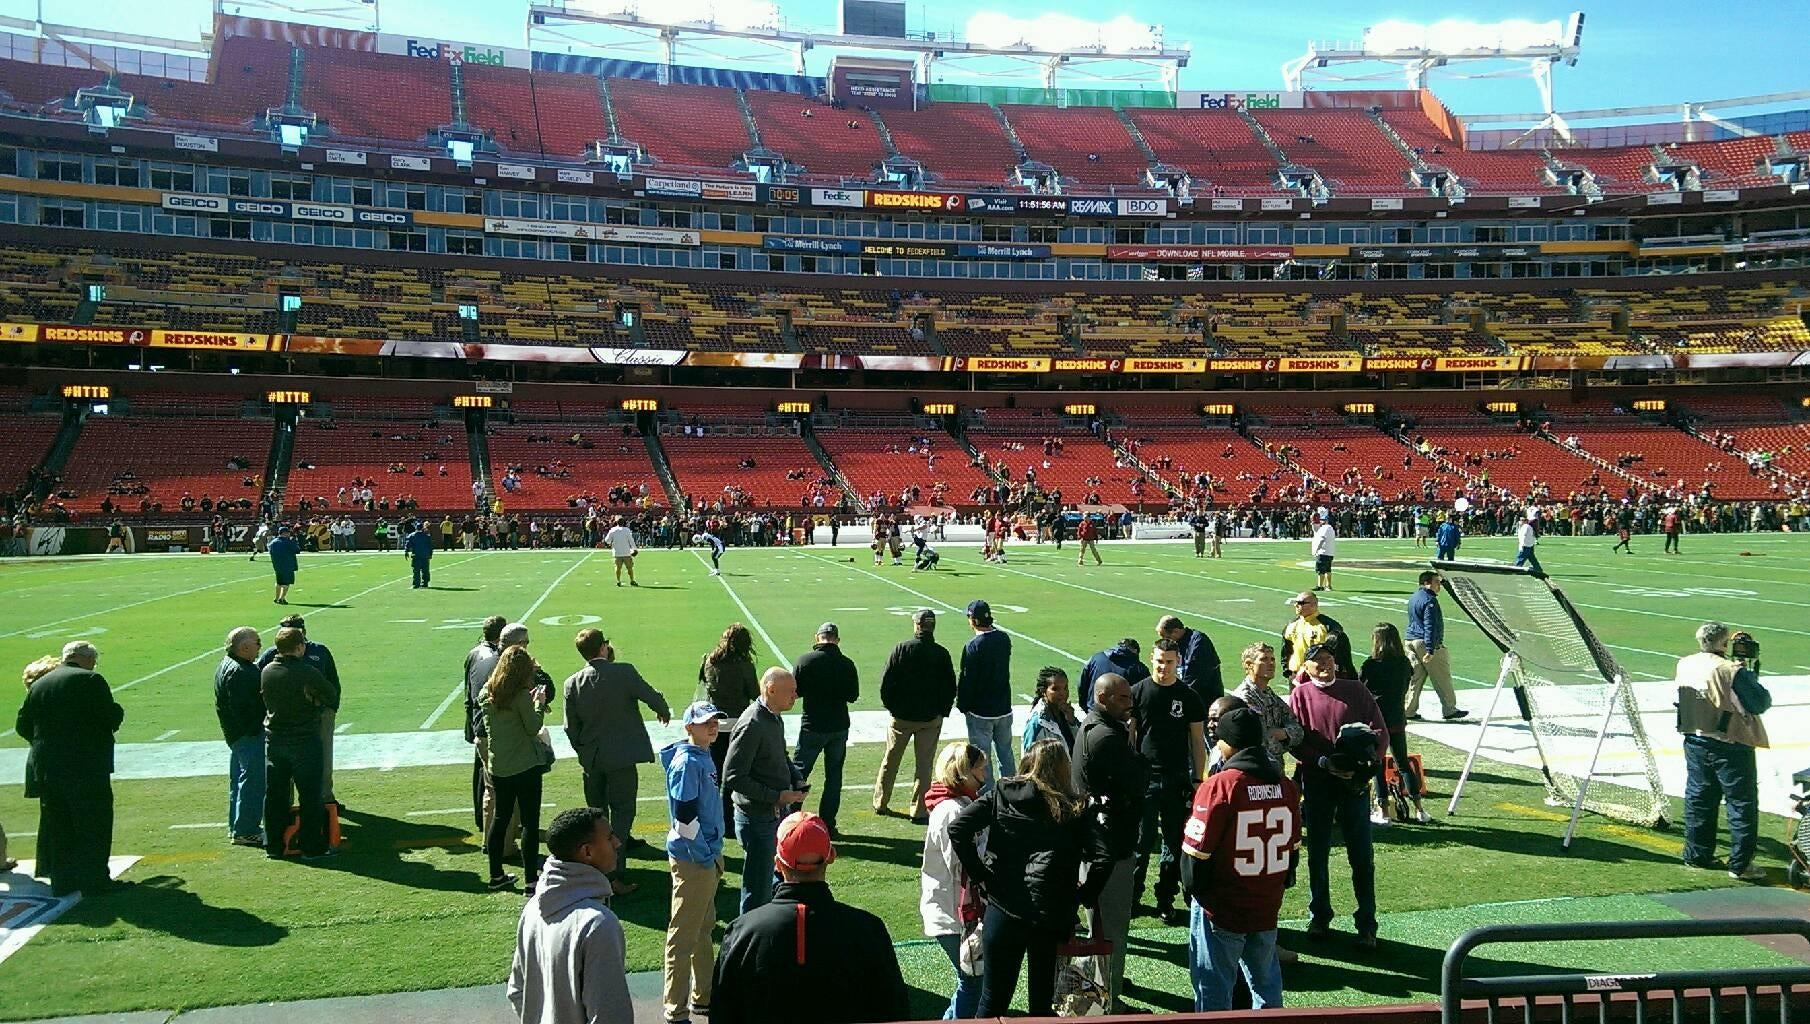 Fútbol canadiense en FedExField